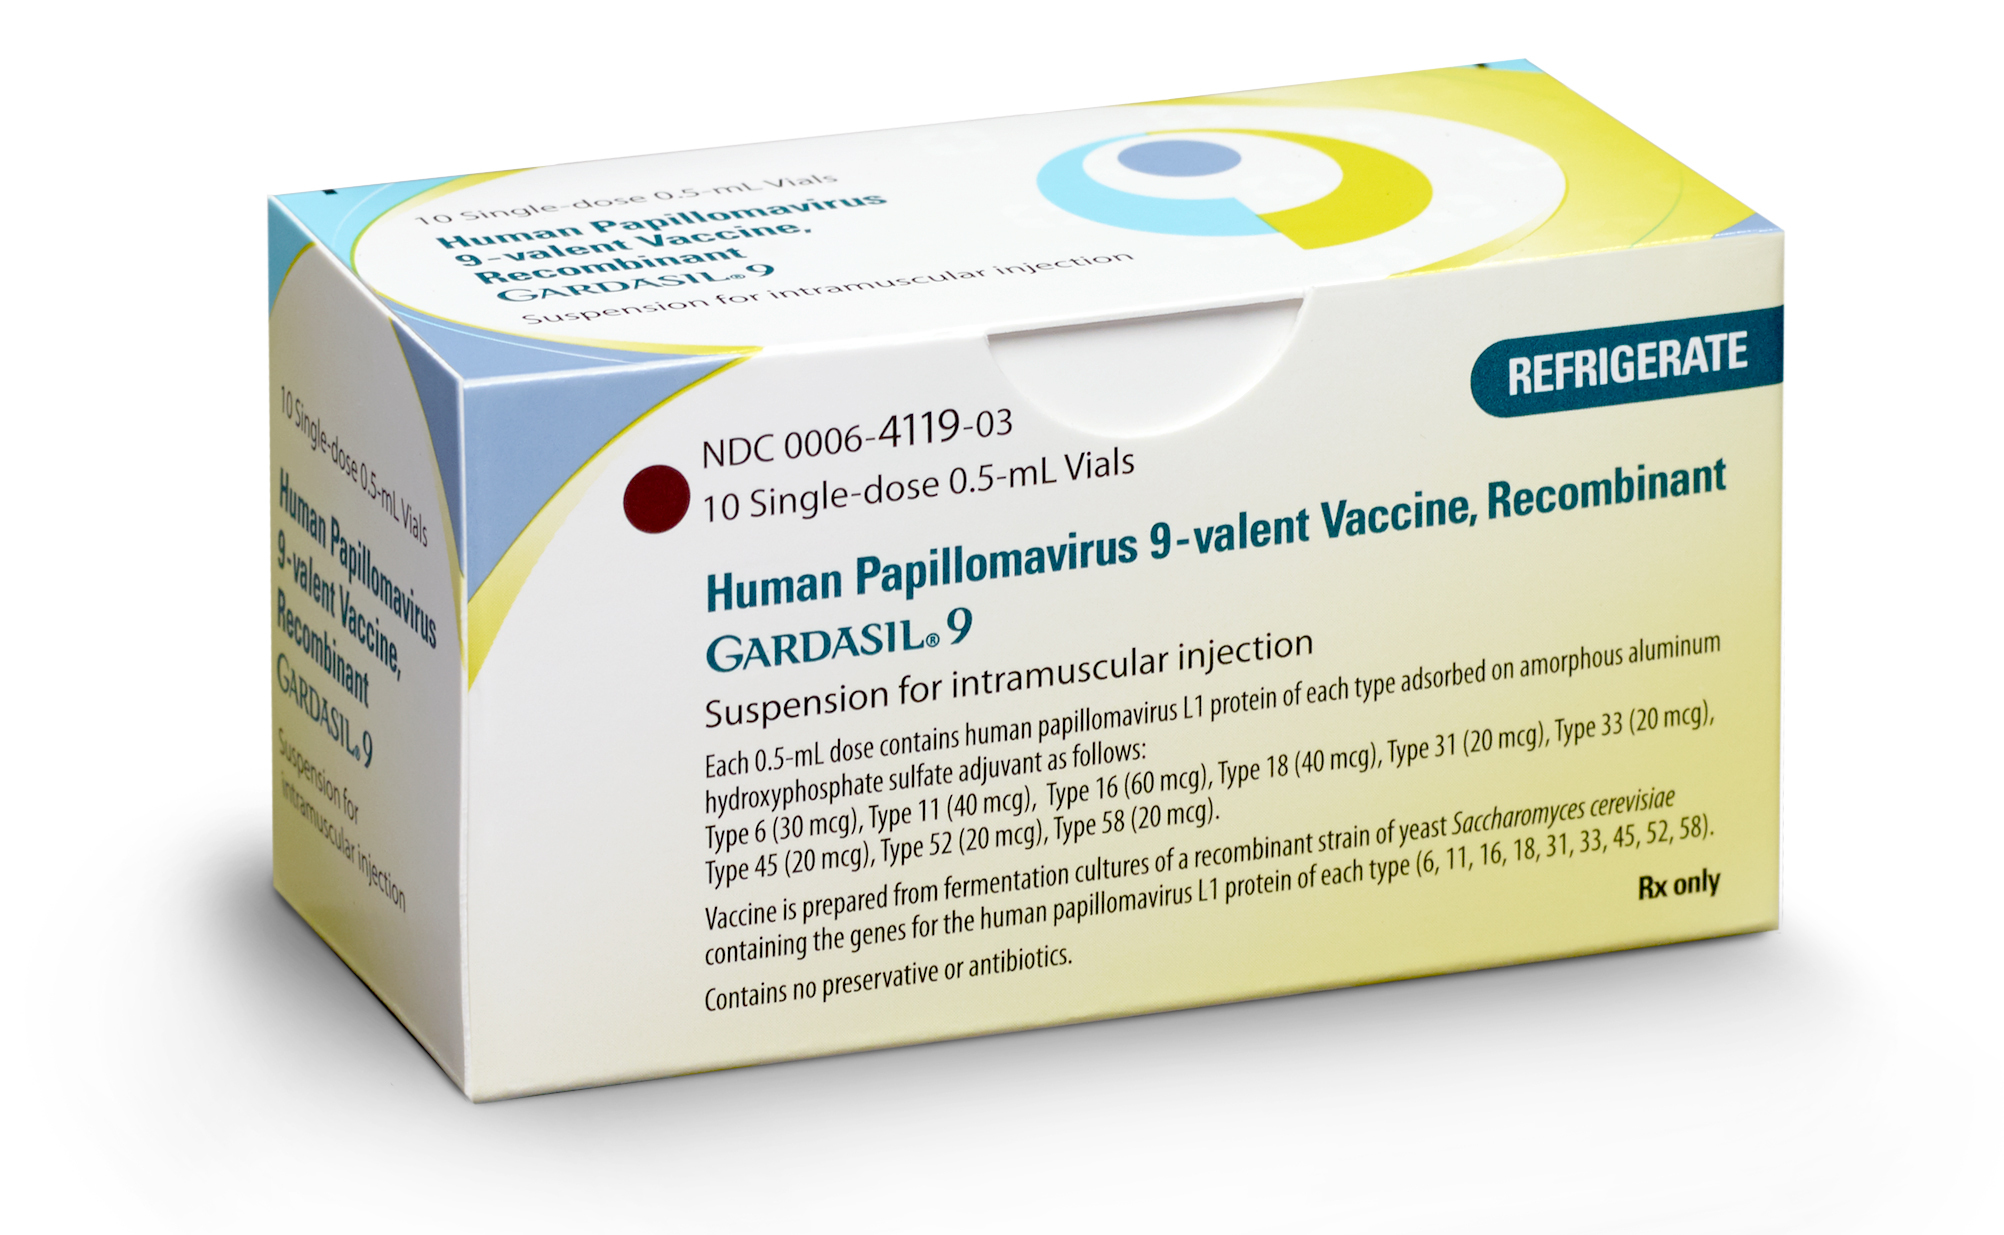 Mercks 9 Valent HPV Vaccine GARDASILR9 Recommended By CDCs